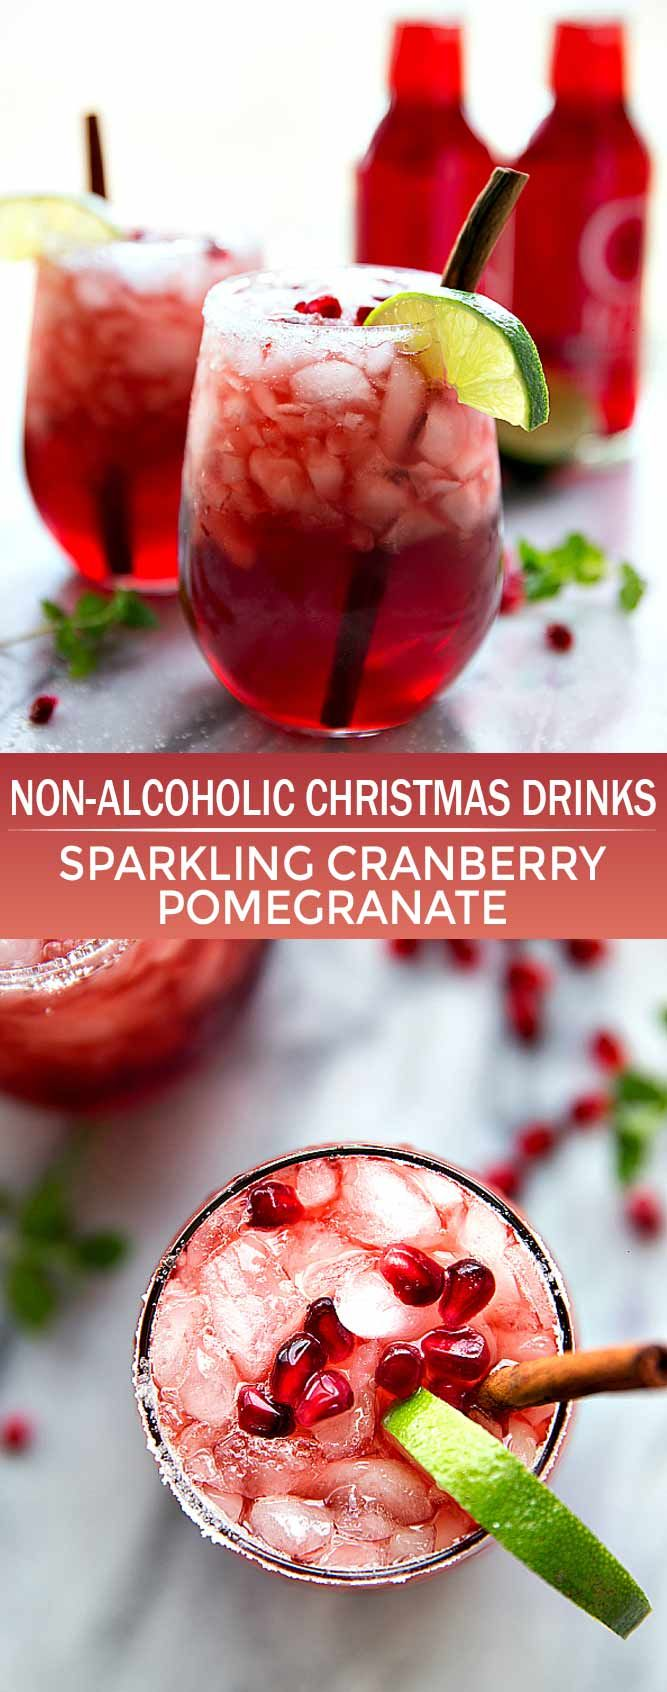 The 25 Best Non Alcoholic Christmas Drinks Ideas On Pinterest Alcoholic Drinks List Christmas Punch Alcohol Champagne And Non Alcoholic Christmas Punch